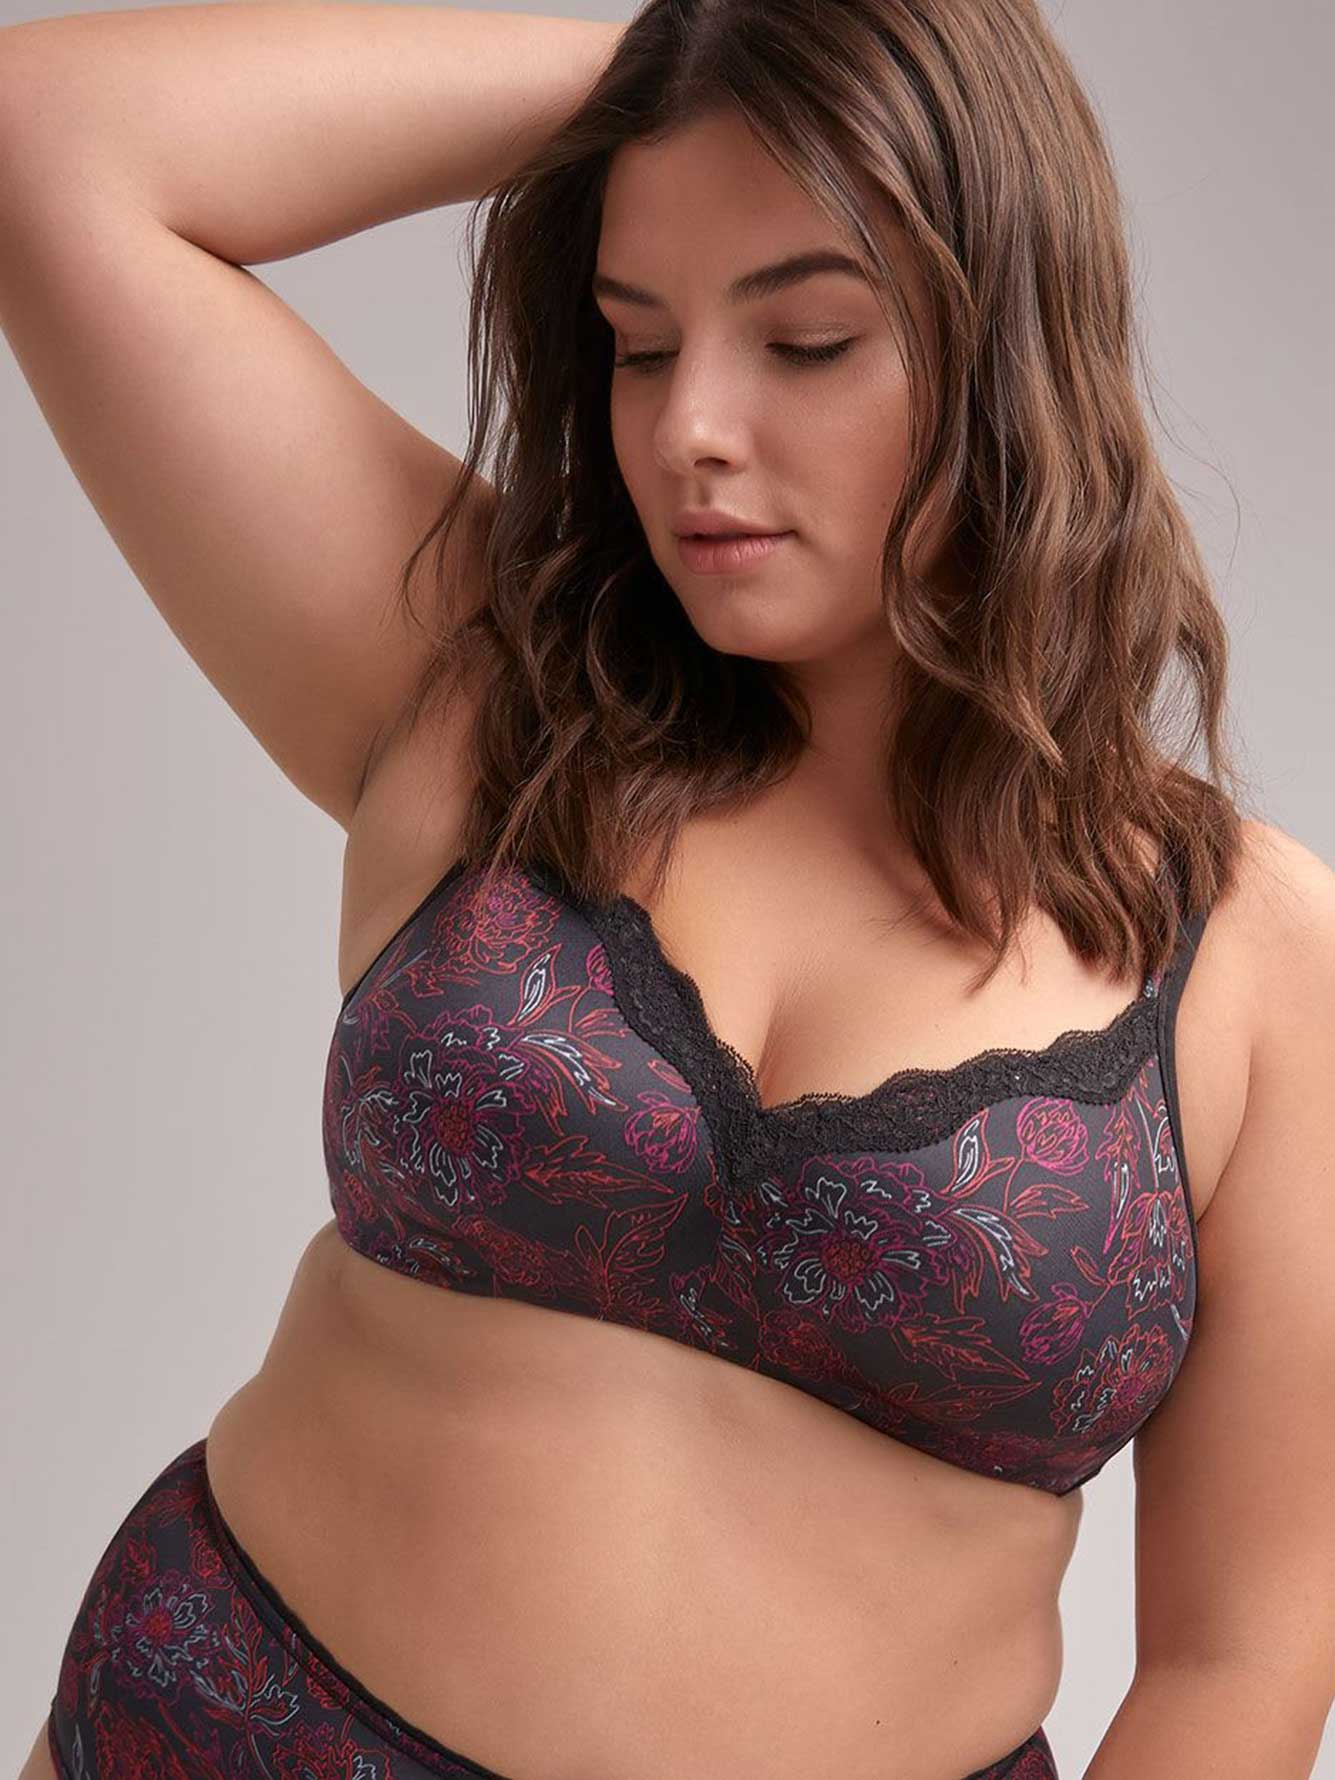 Floral Padded Wirefree Bra with Lace, G & H Cups - ti Voglio